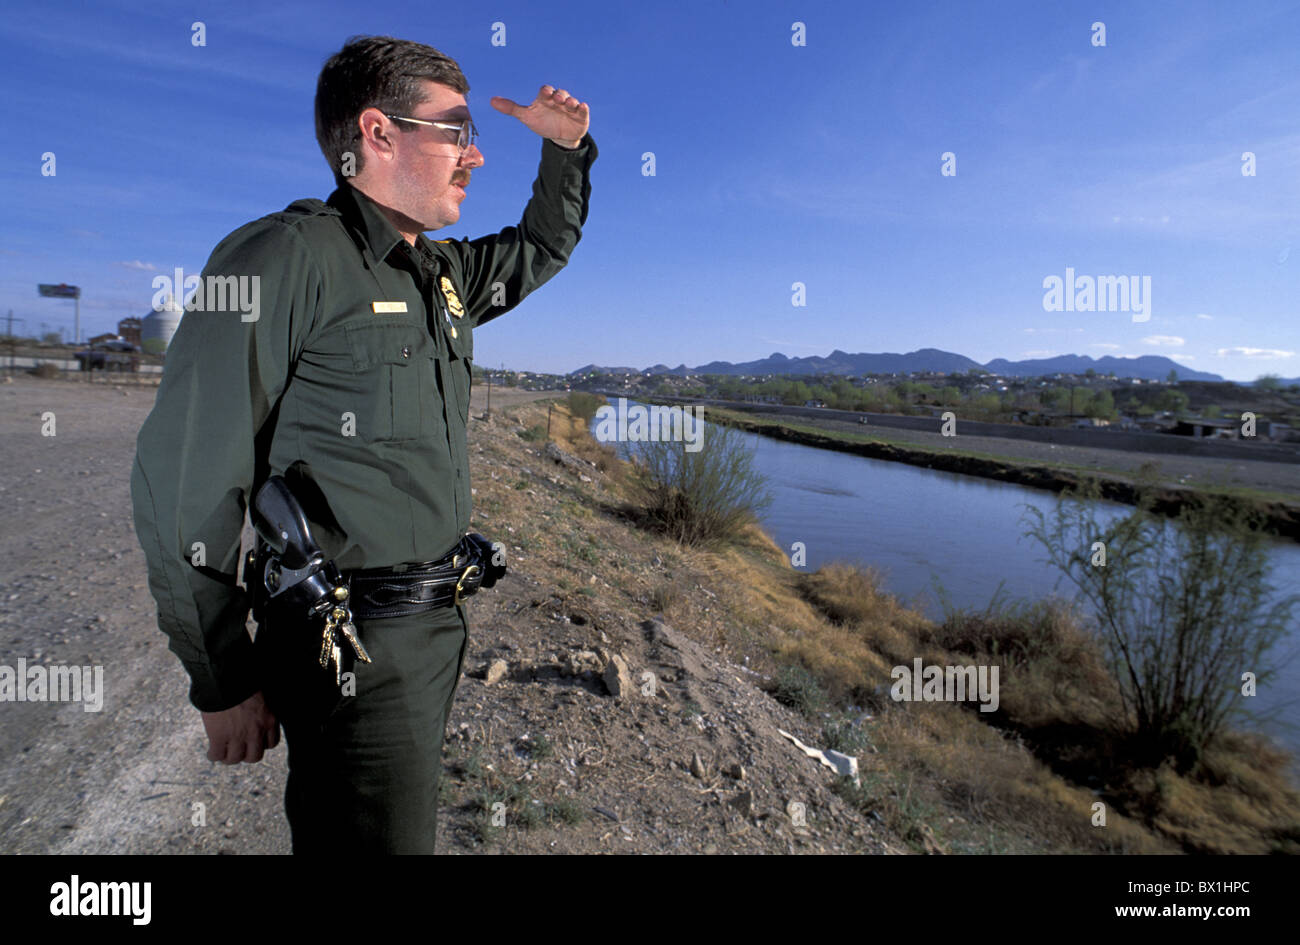 us border patrol research papers Border patrol feds hunt down mystery landowners in bid to build border wall the federal government has spent a decade chasing a meandering paper trail, with researchers combing through yellowed government files, testing the faded memories of neighbors and perusing the local library as they try to sort out who owns the land.